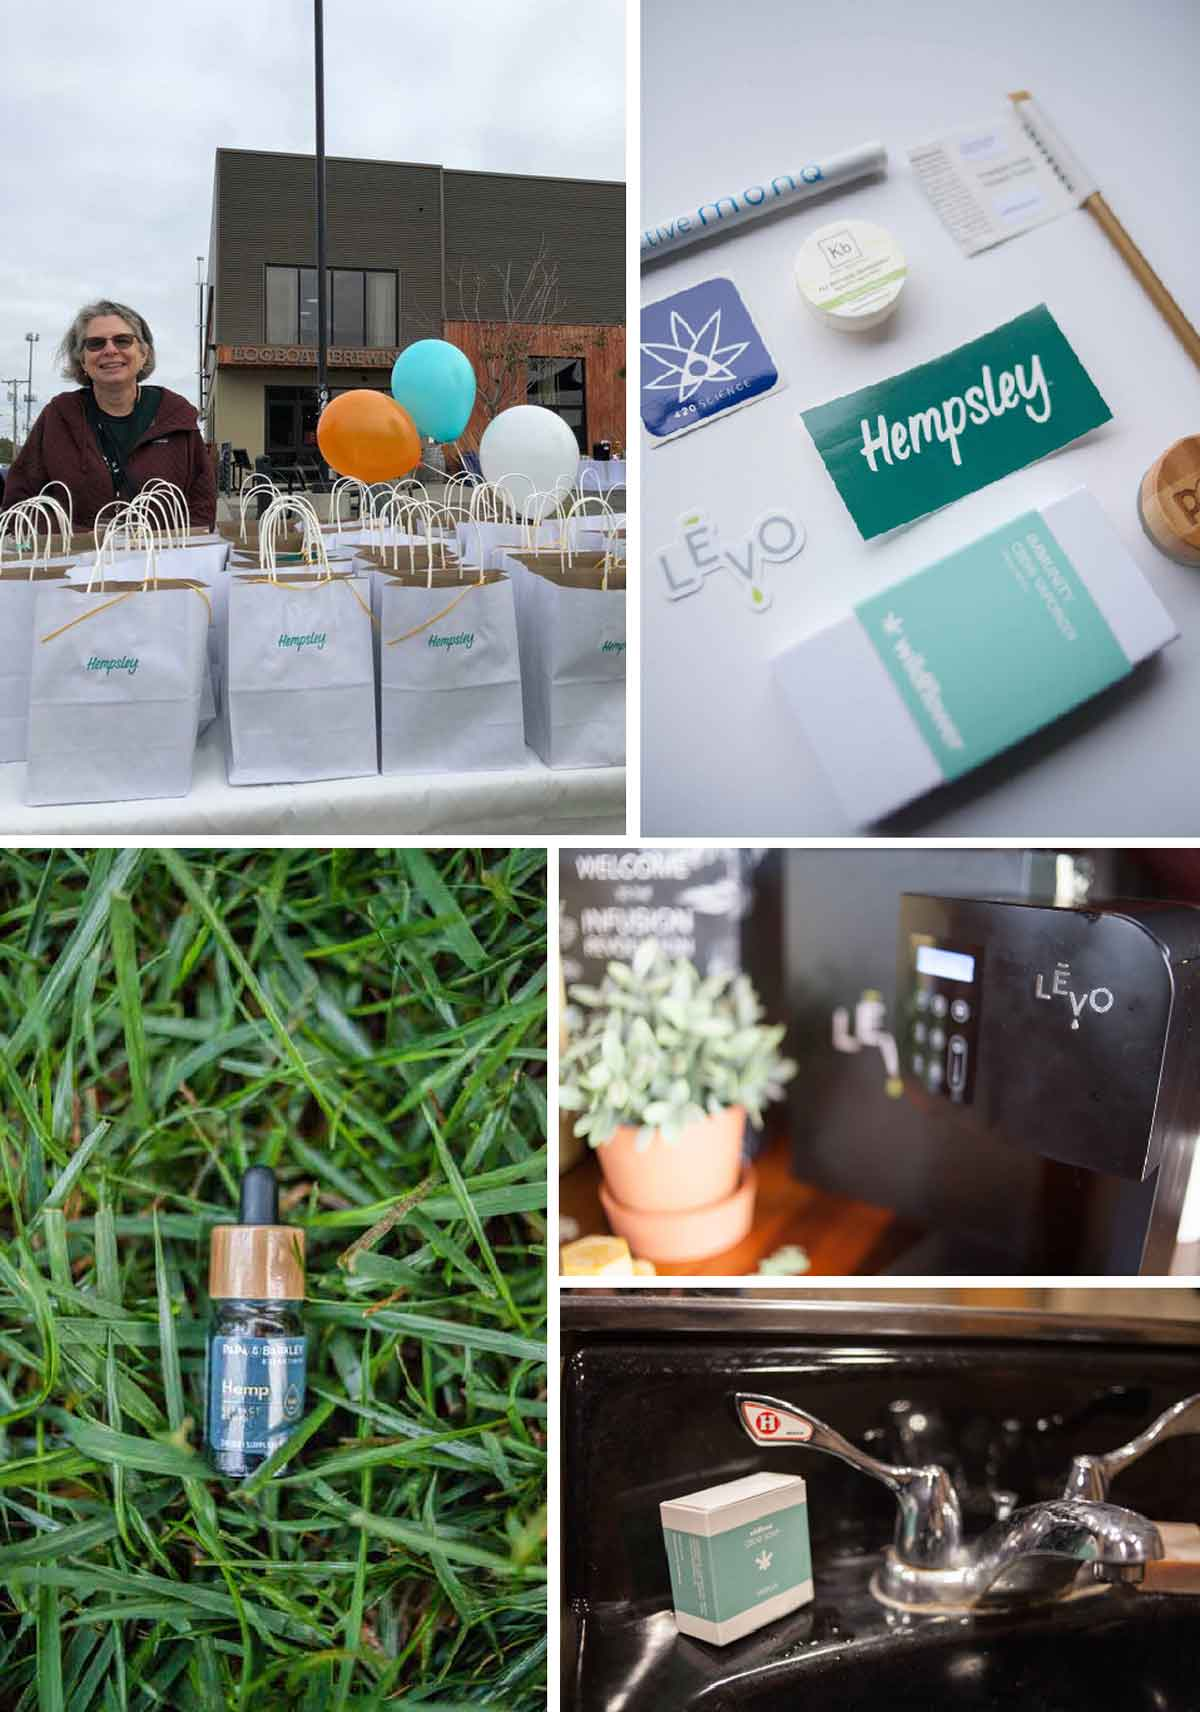 Highlights from Hempsley's educational cannabis event in Missouri